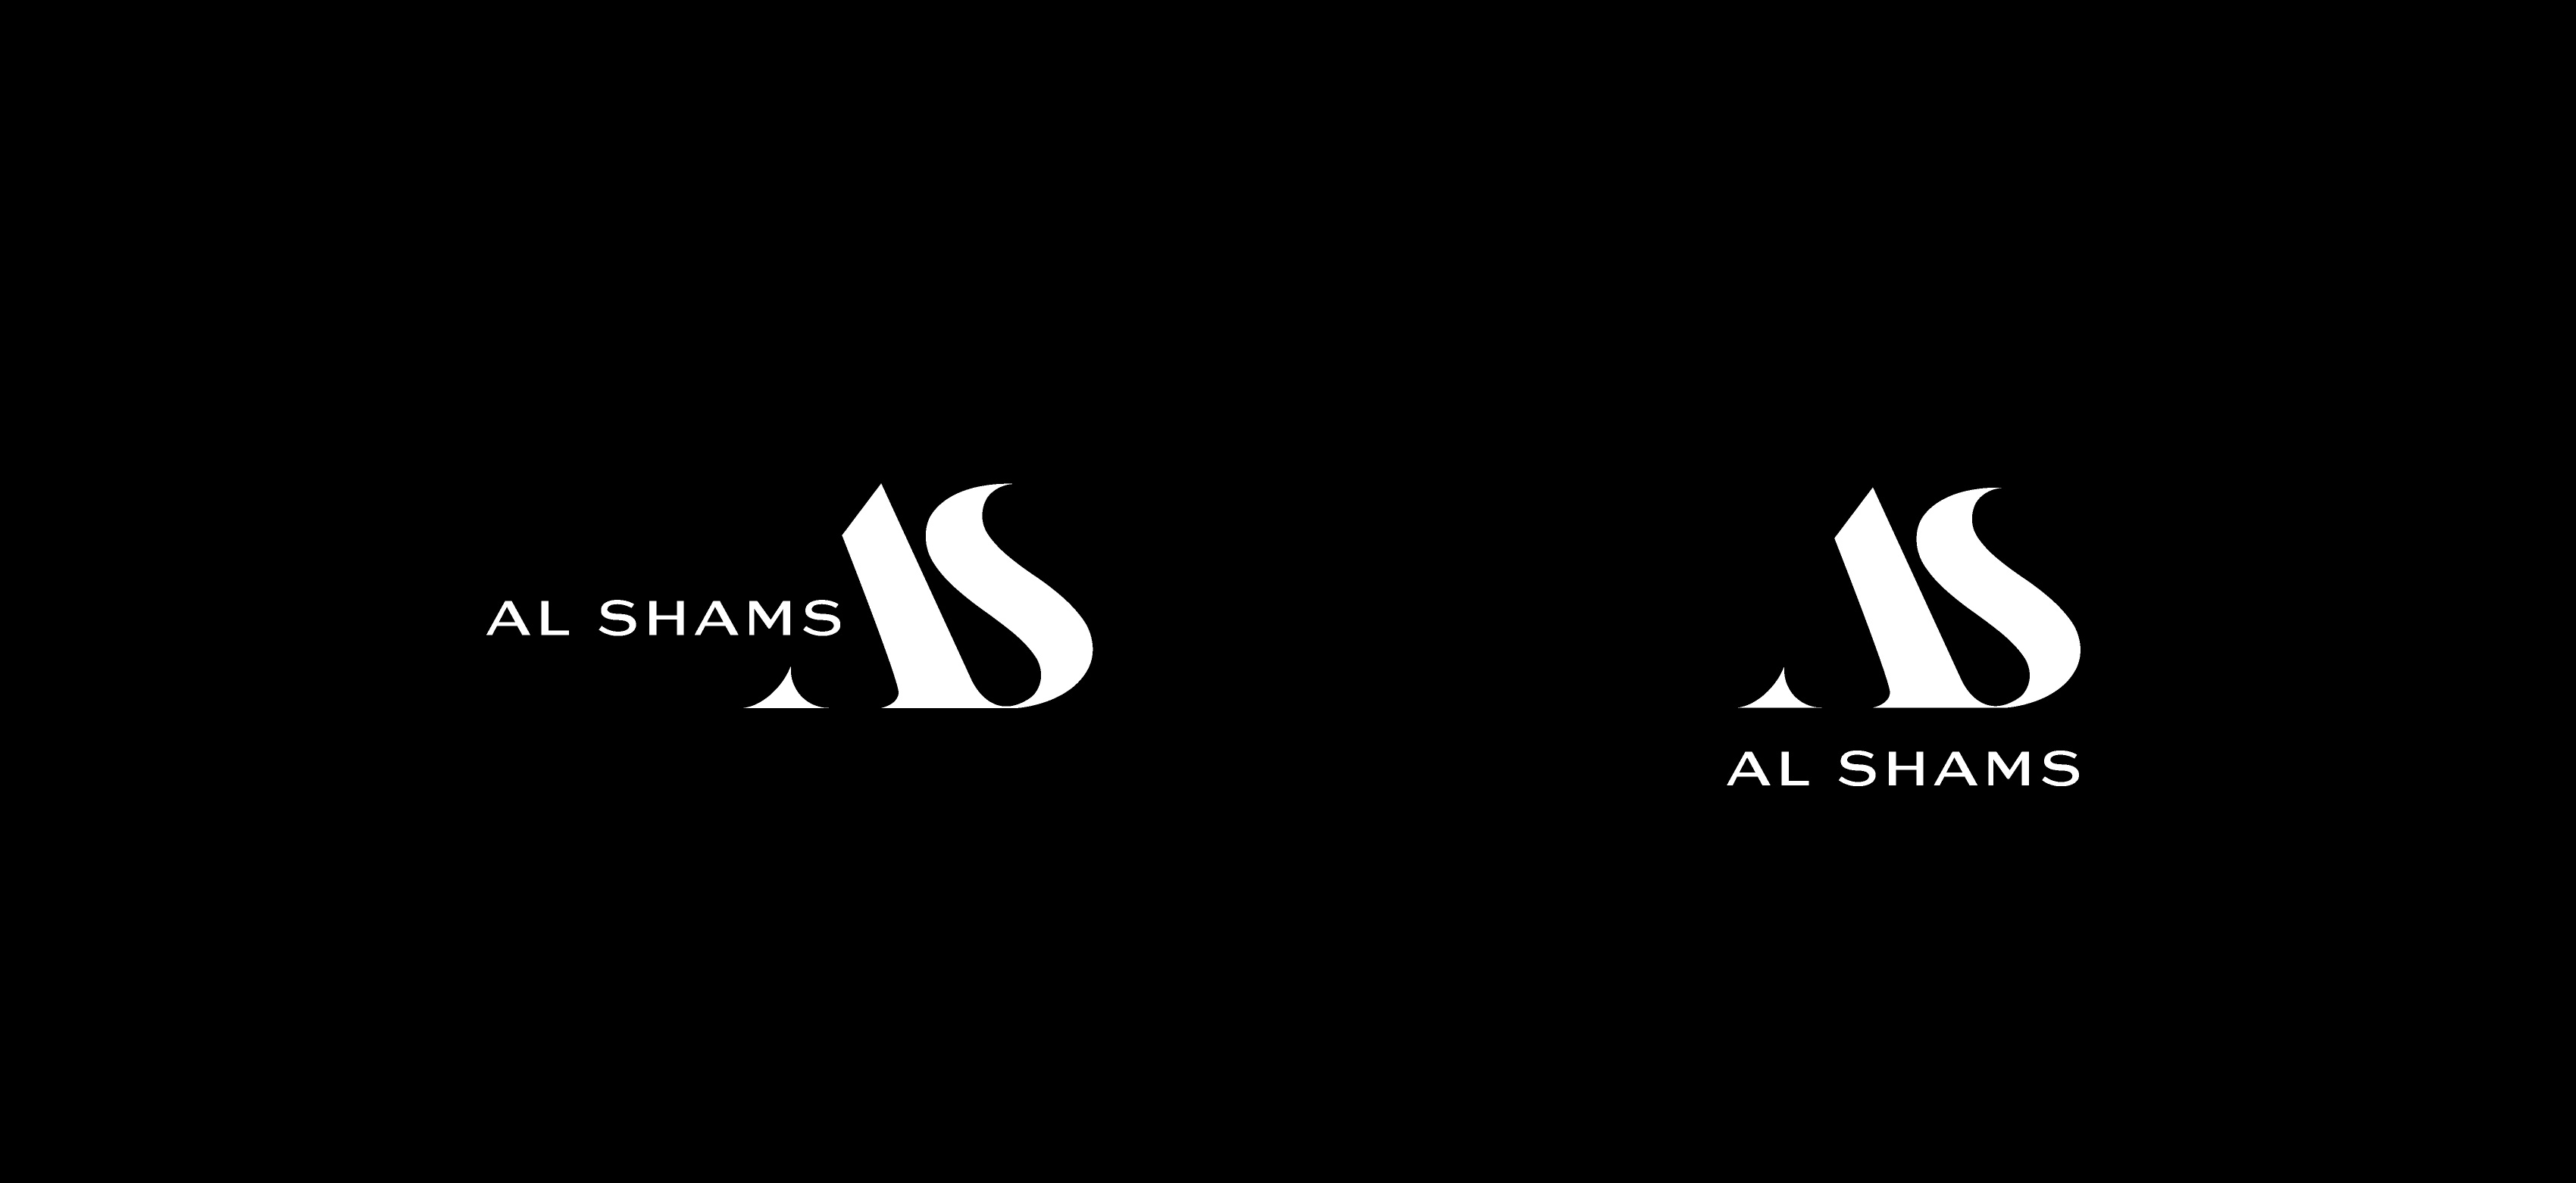 LOGOS-PROVOKE-alshams